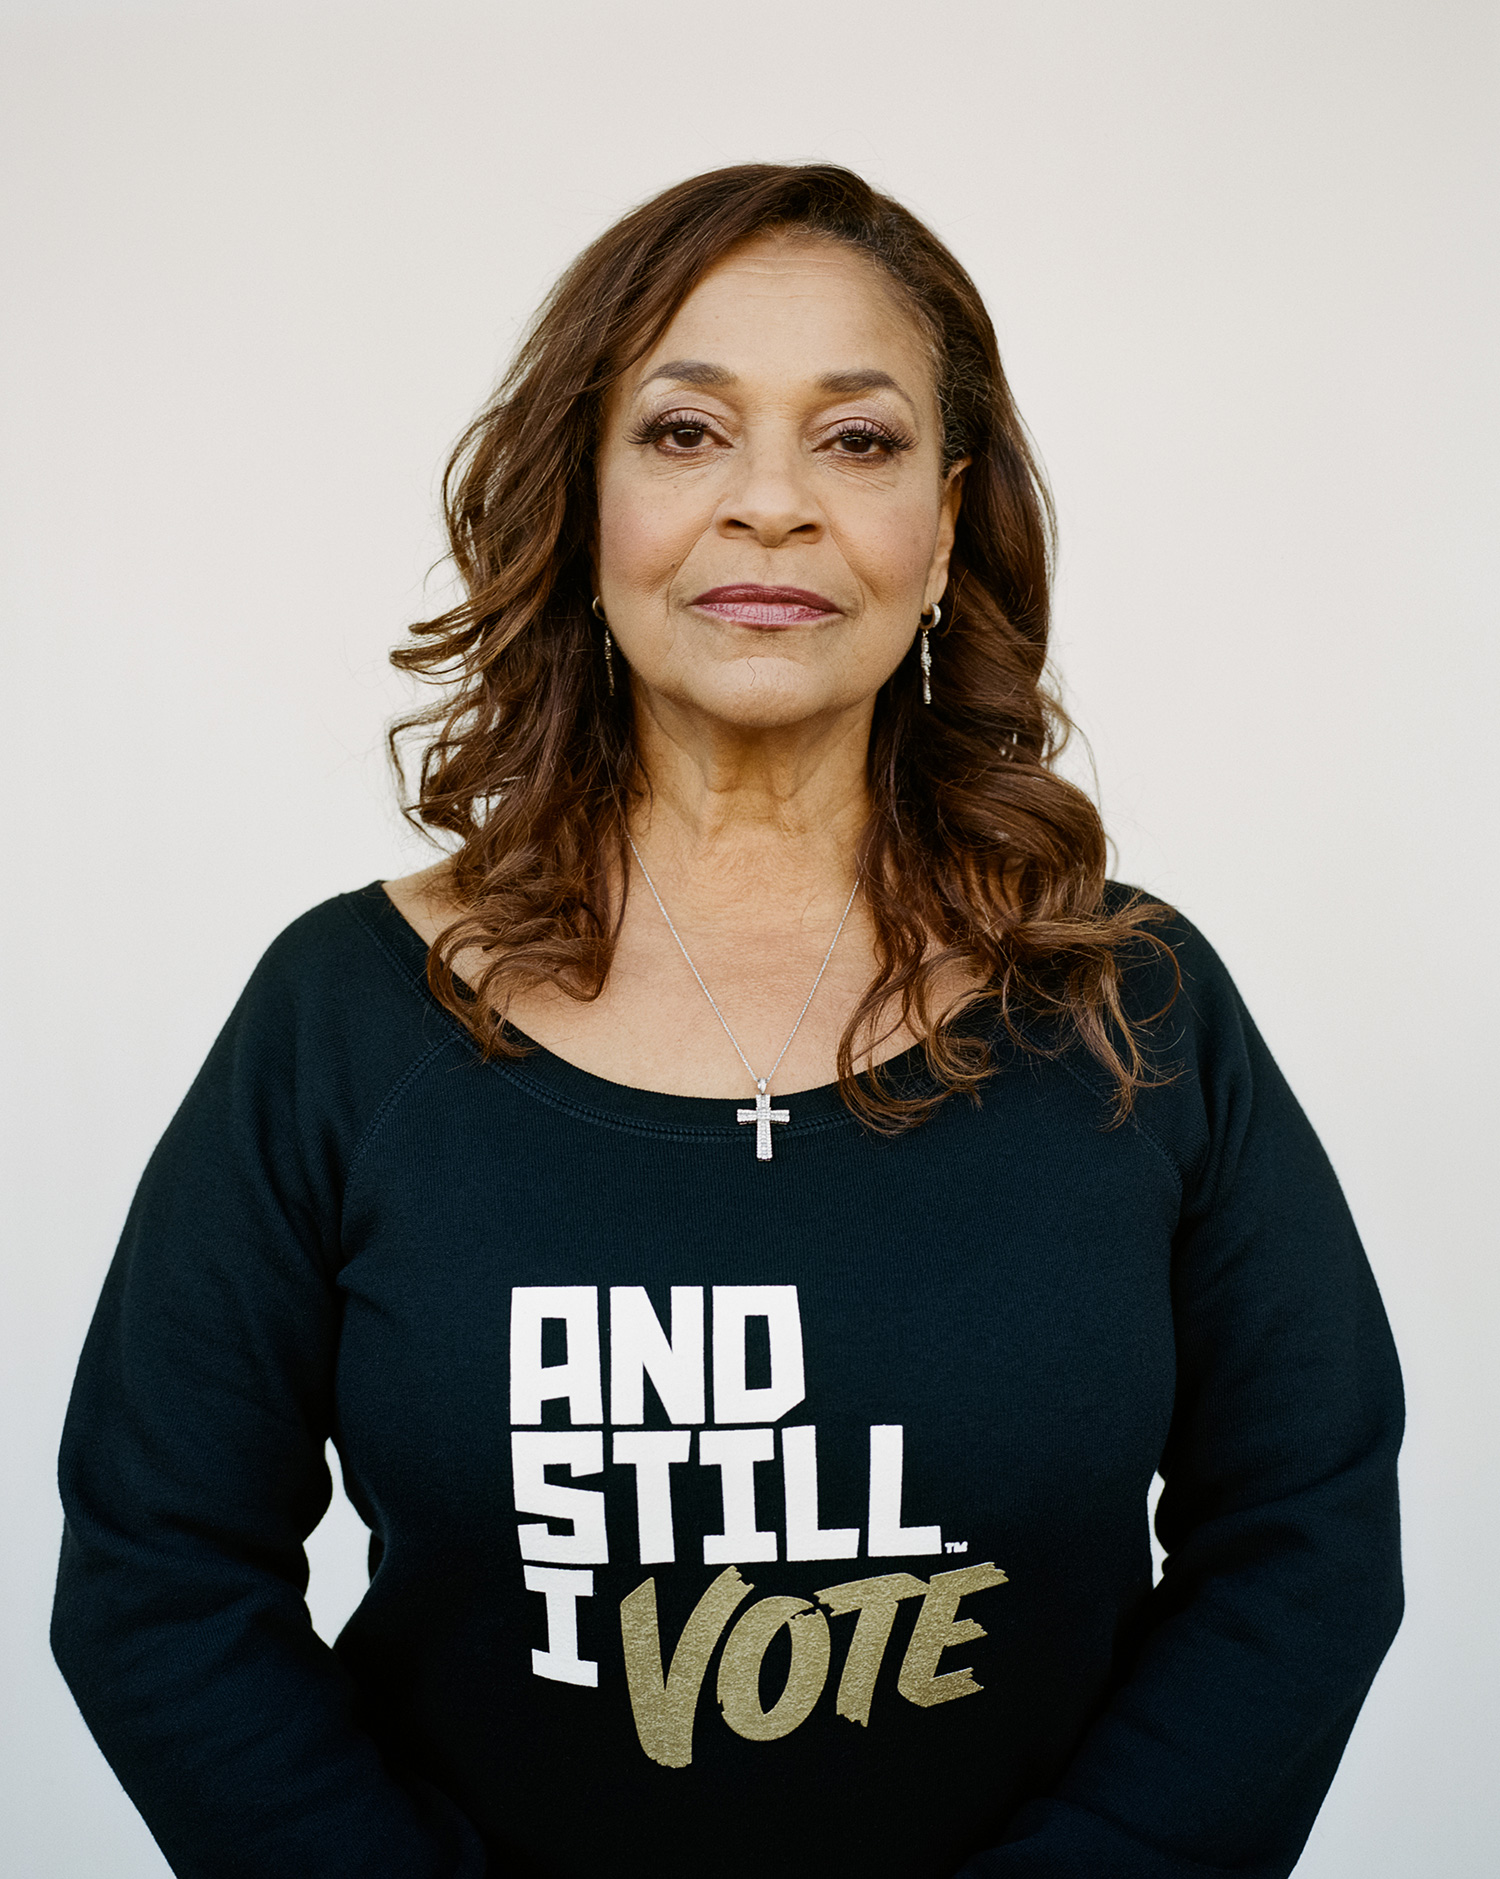 Debbie ALlen Voting Rights Portraits